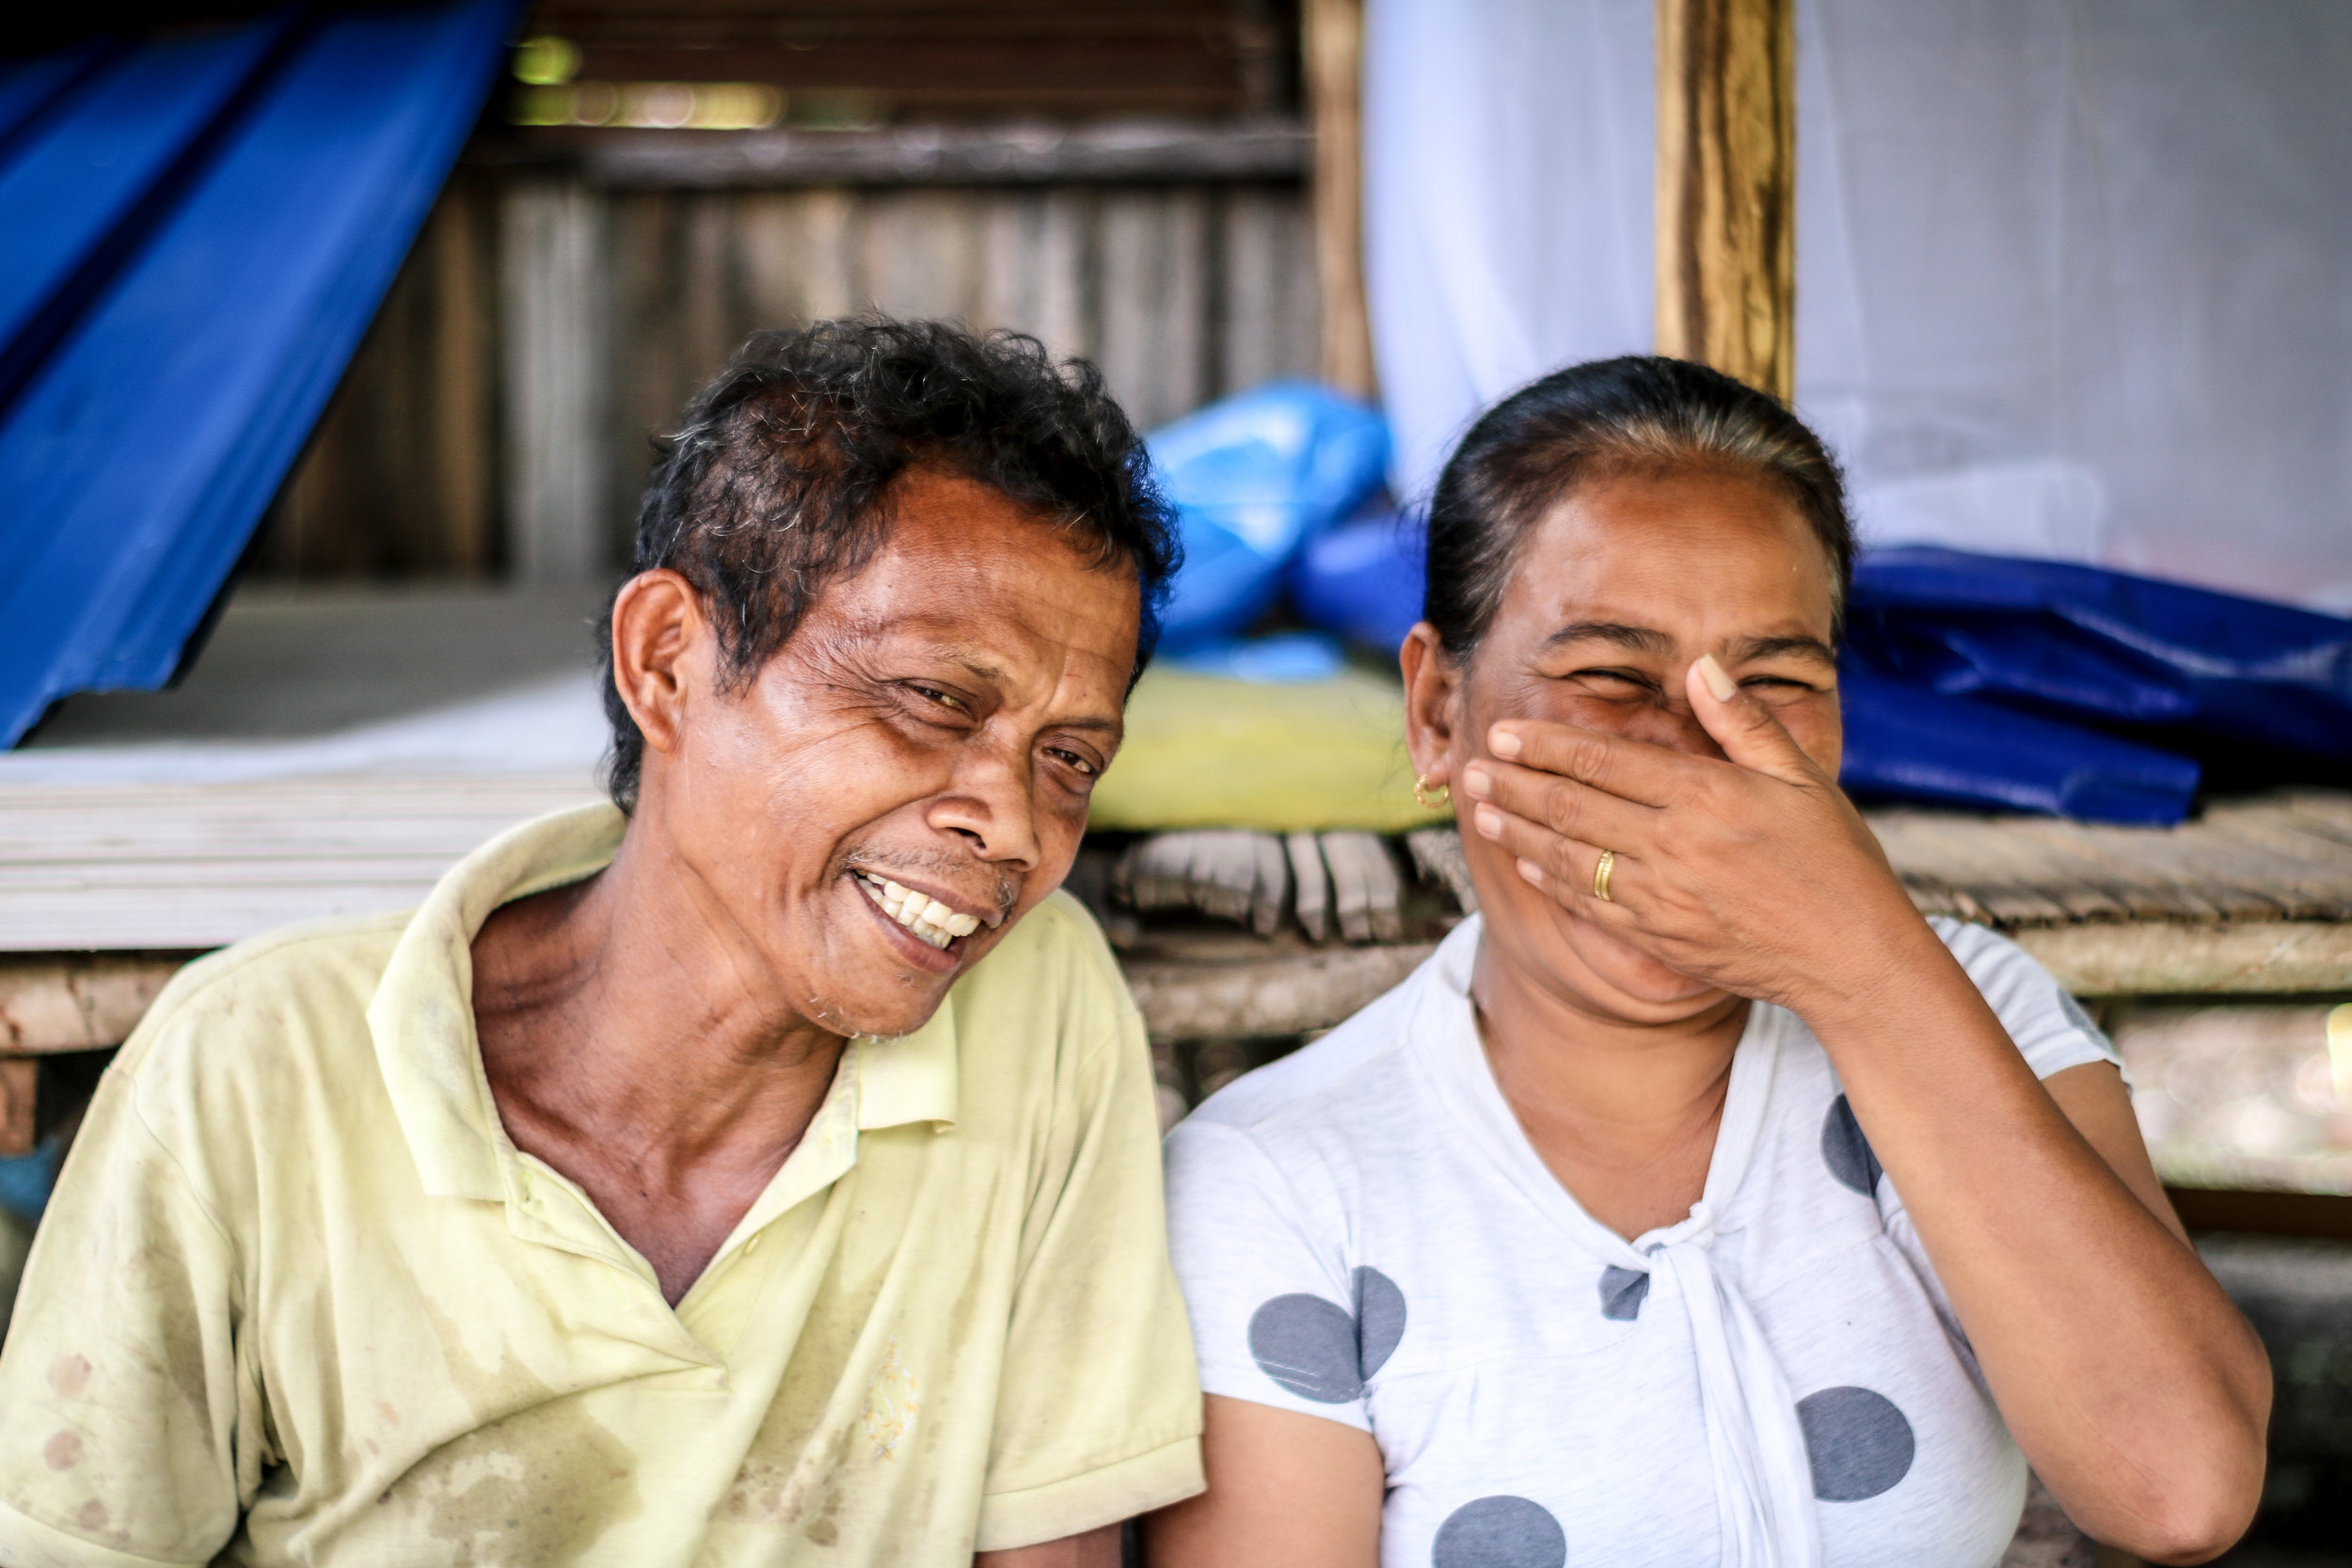 Belcion and Olfin – still finding the strength to smile   [Image: Paola Barioli/Medair]